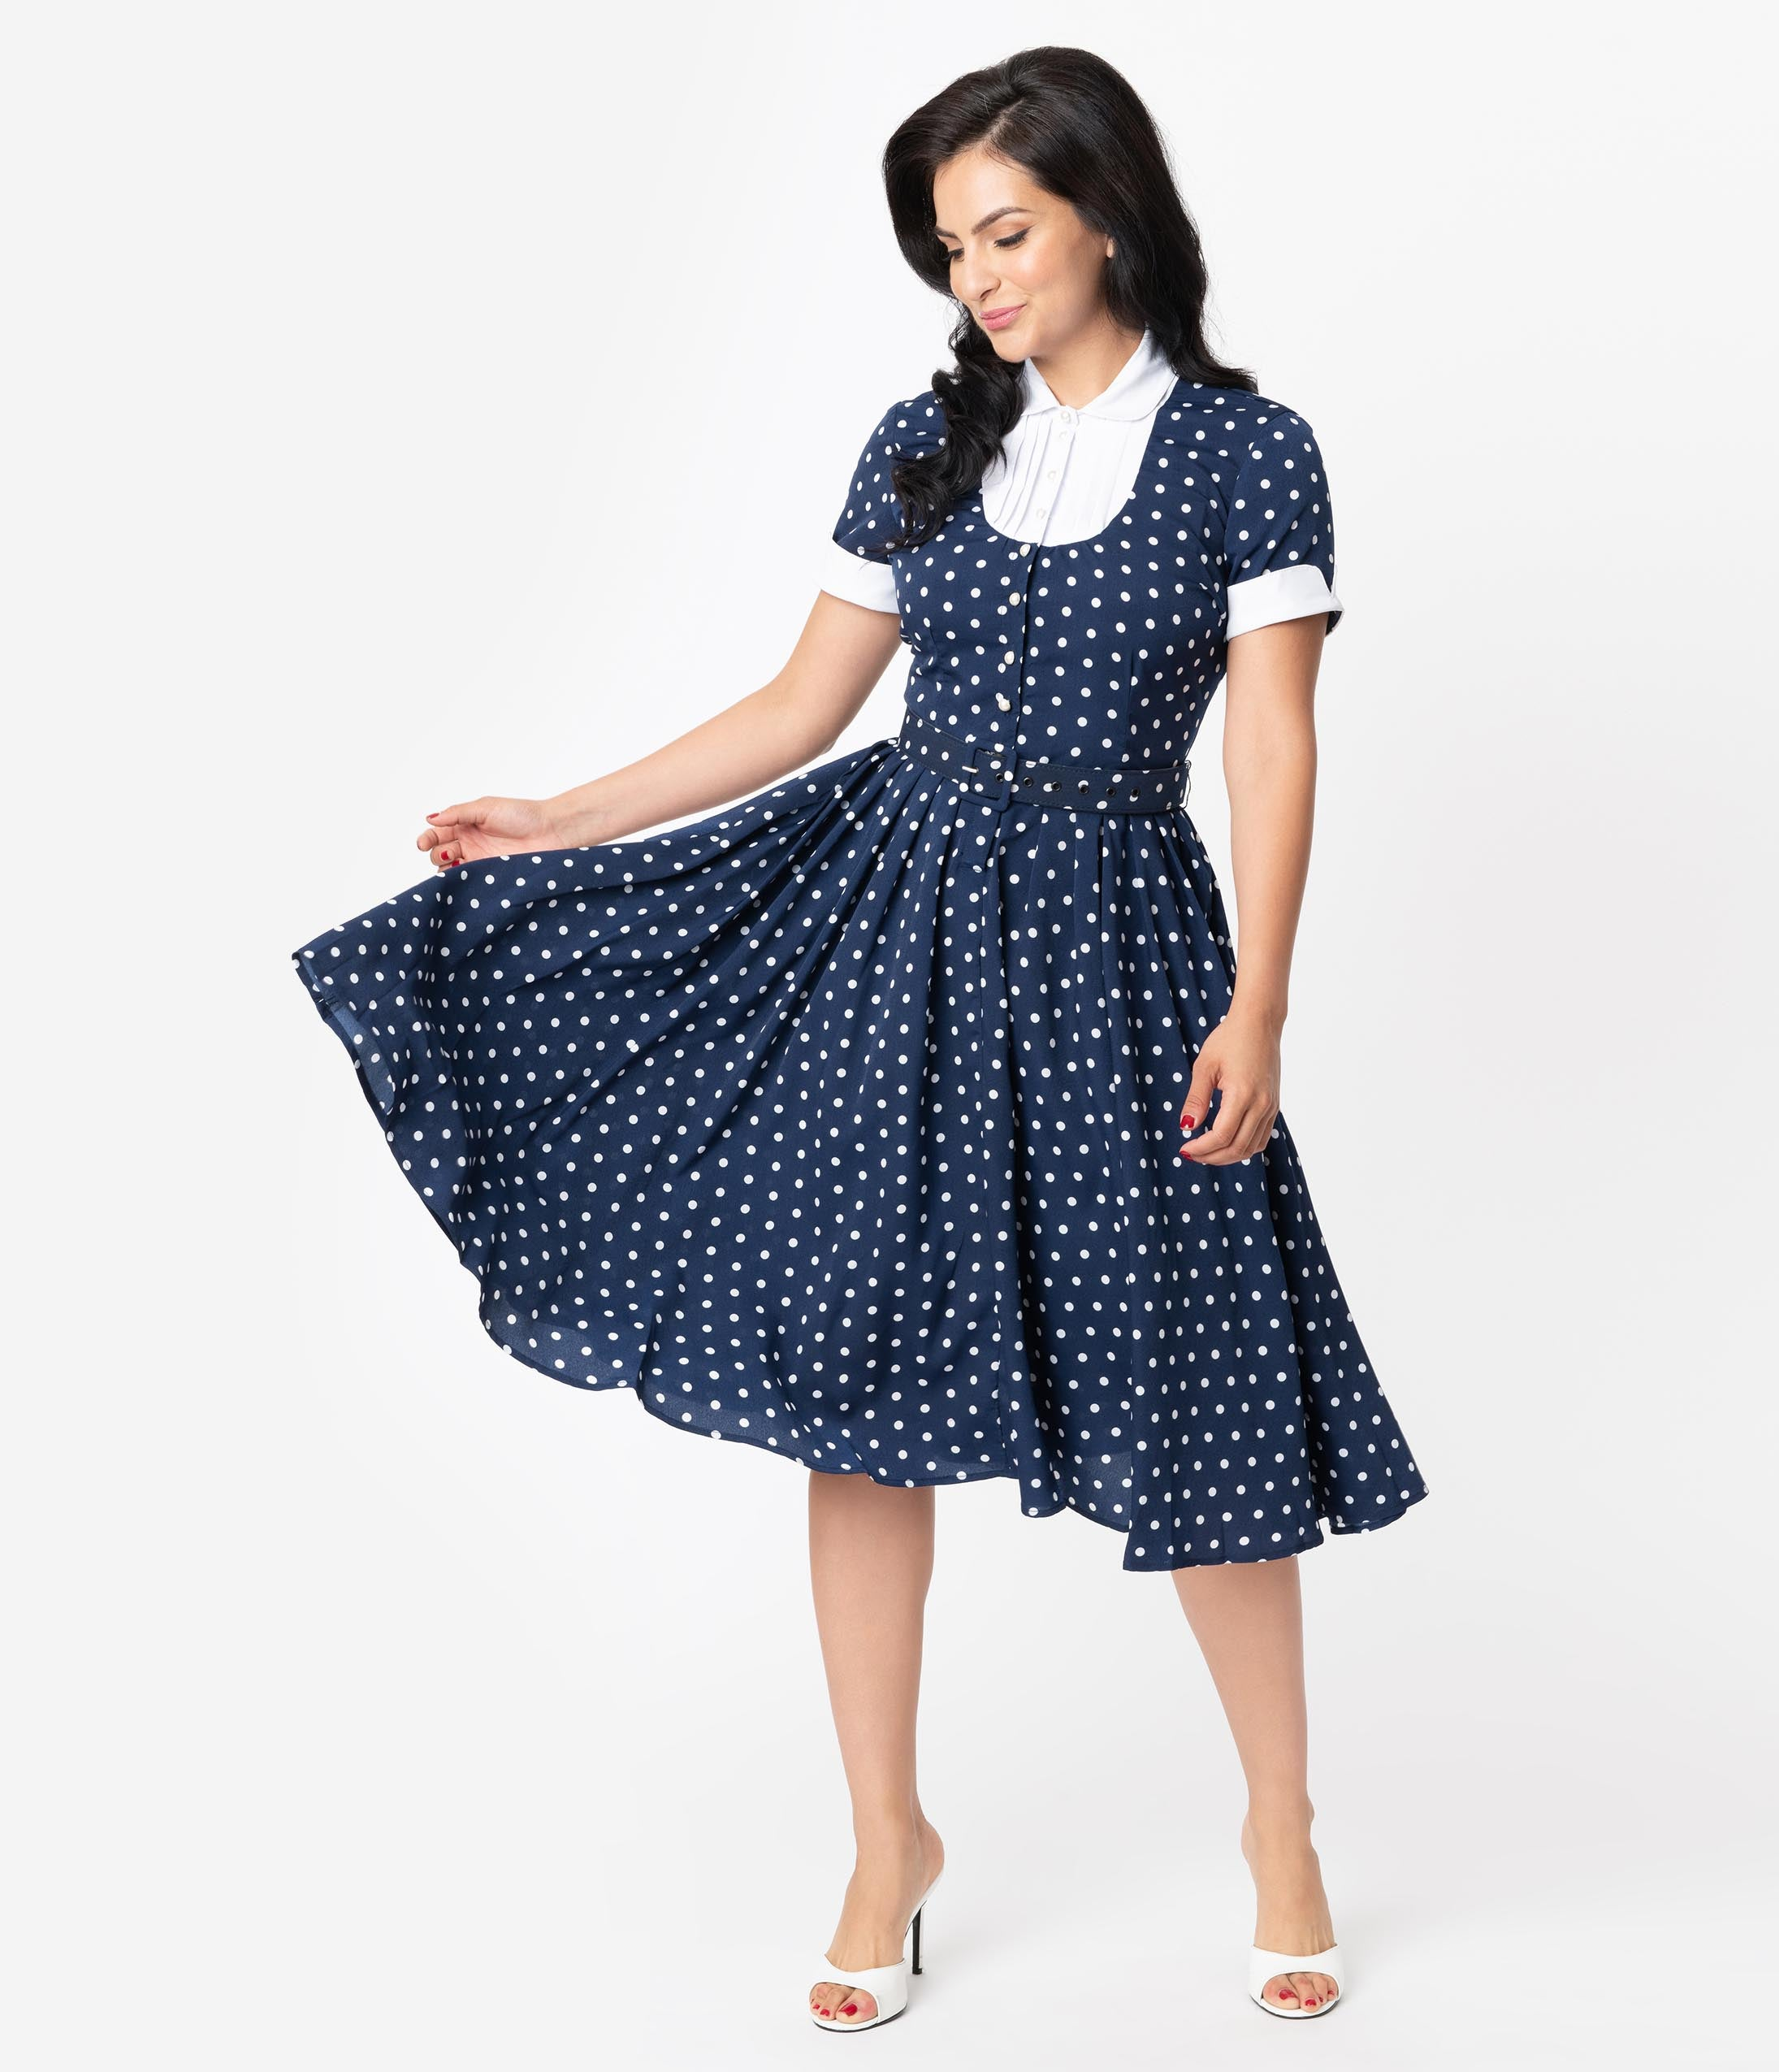 500 Vintage Style Dresses for Sale | Vintage Inspired Dresses I Love Lucy X Unique Vintage Navy  White Polka Dot Ricardo Swing Dress $98.00 AT vintagedancer.com